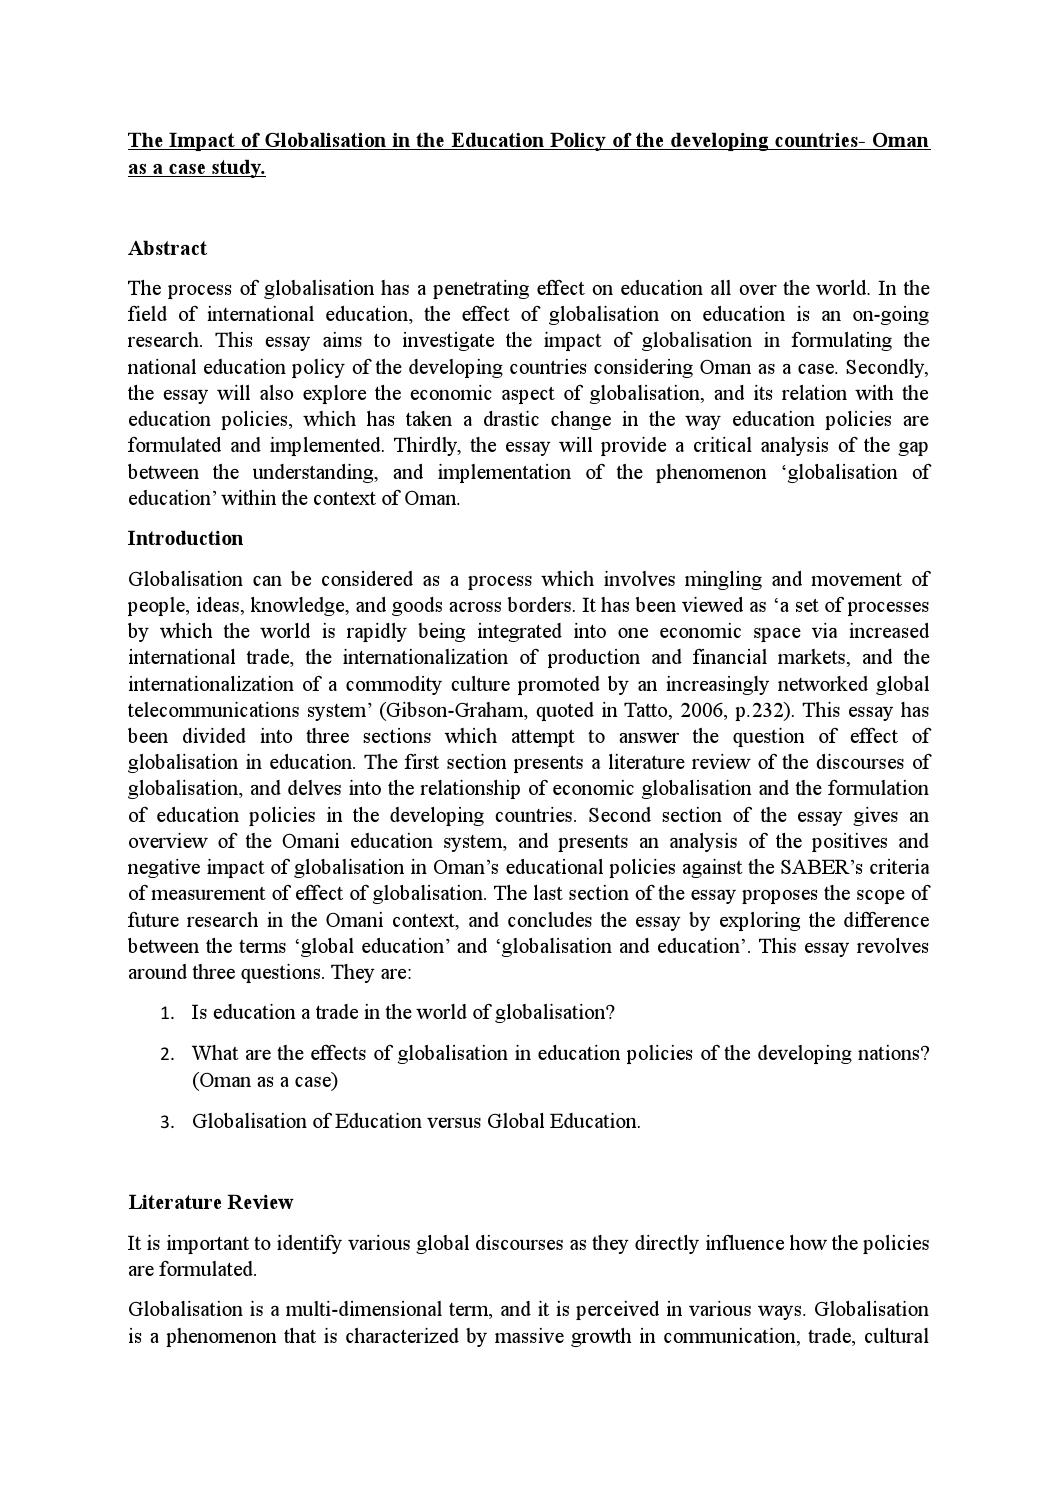 essays on globalisation the impact of globalisation in the  the impact of globalisation in the education policy of the the impact of globalisation in the